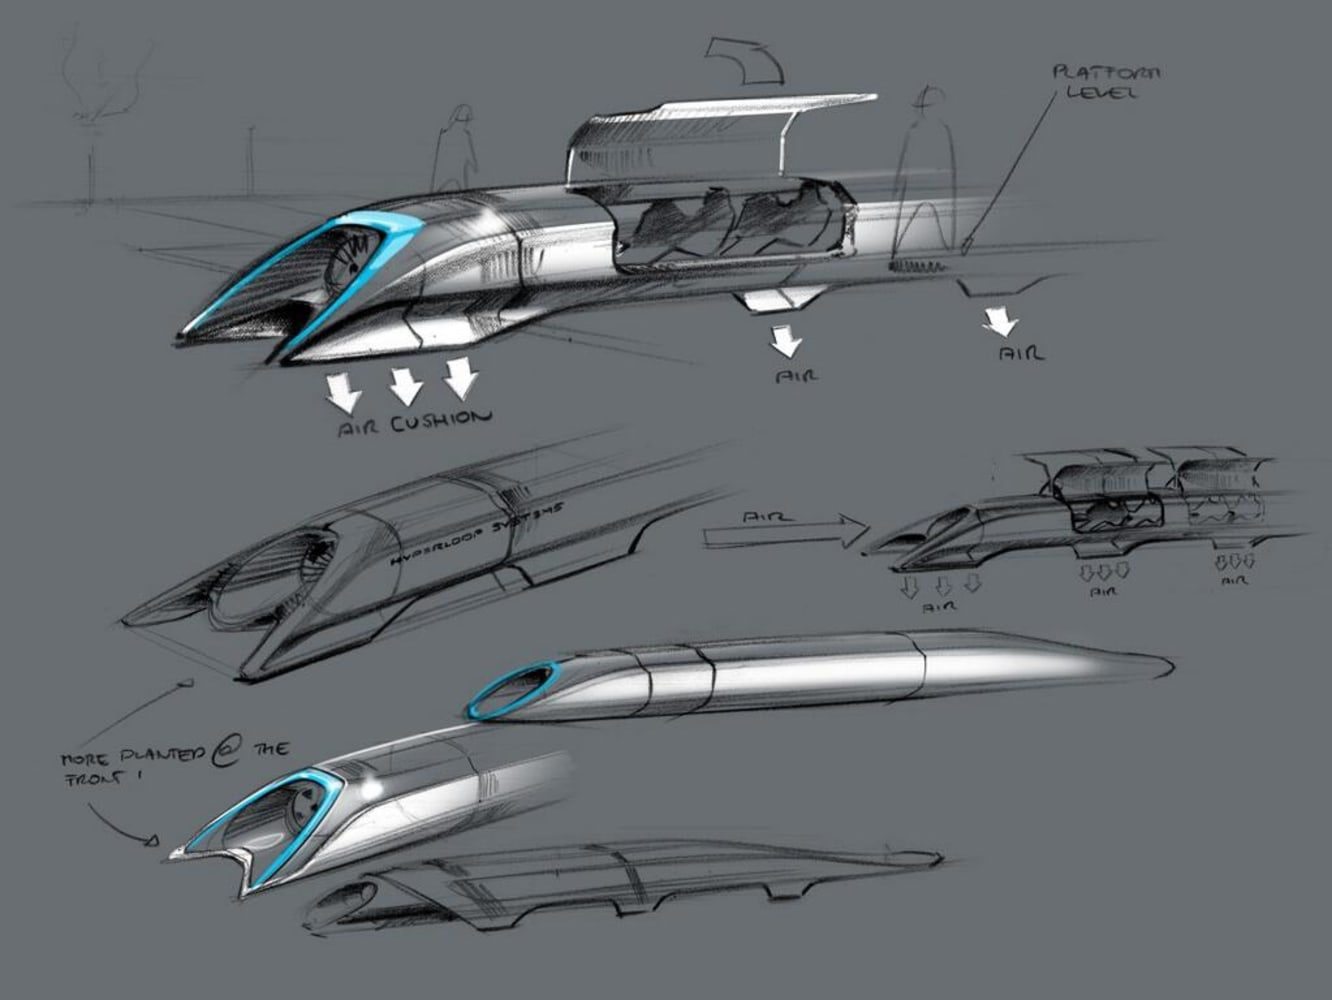 Hyperloop revealed: Elon Musk foresees rapid transit in a tube